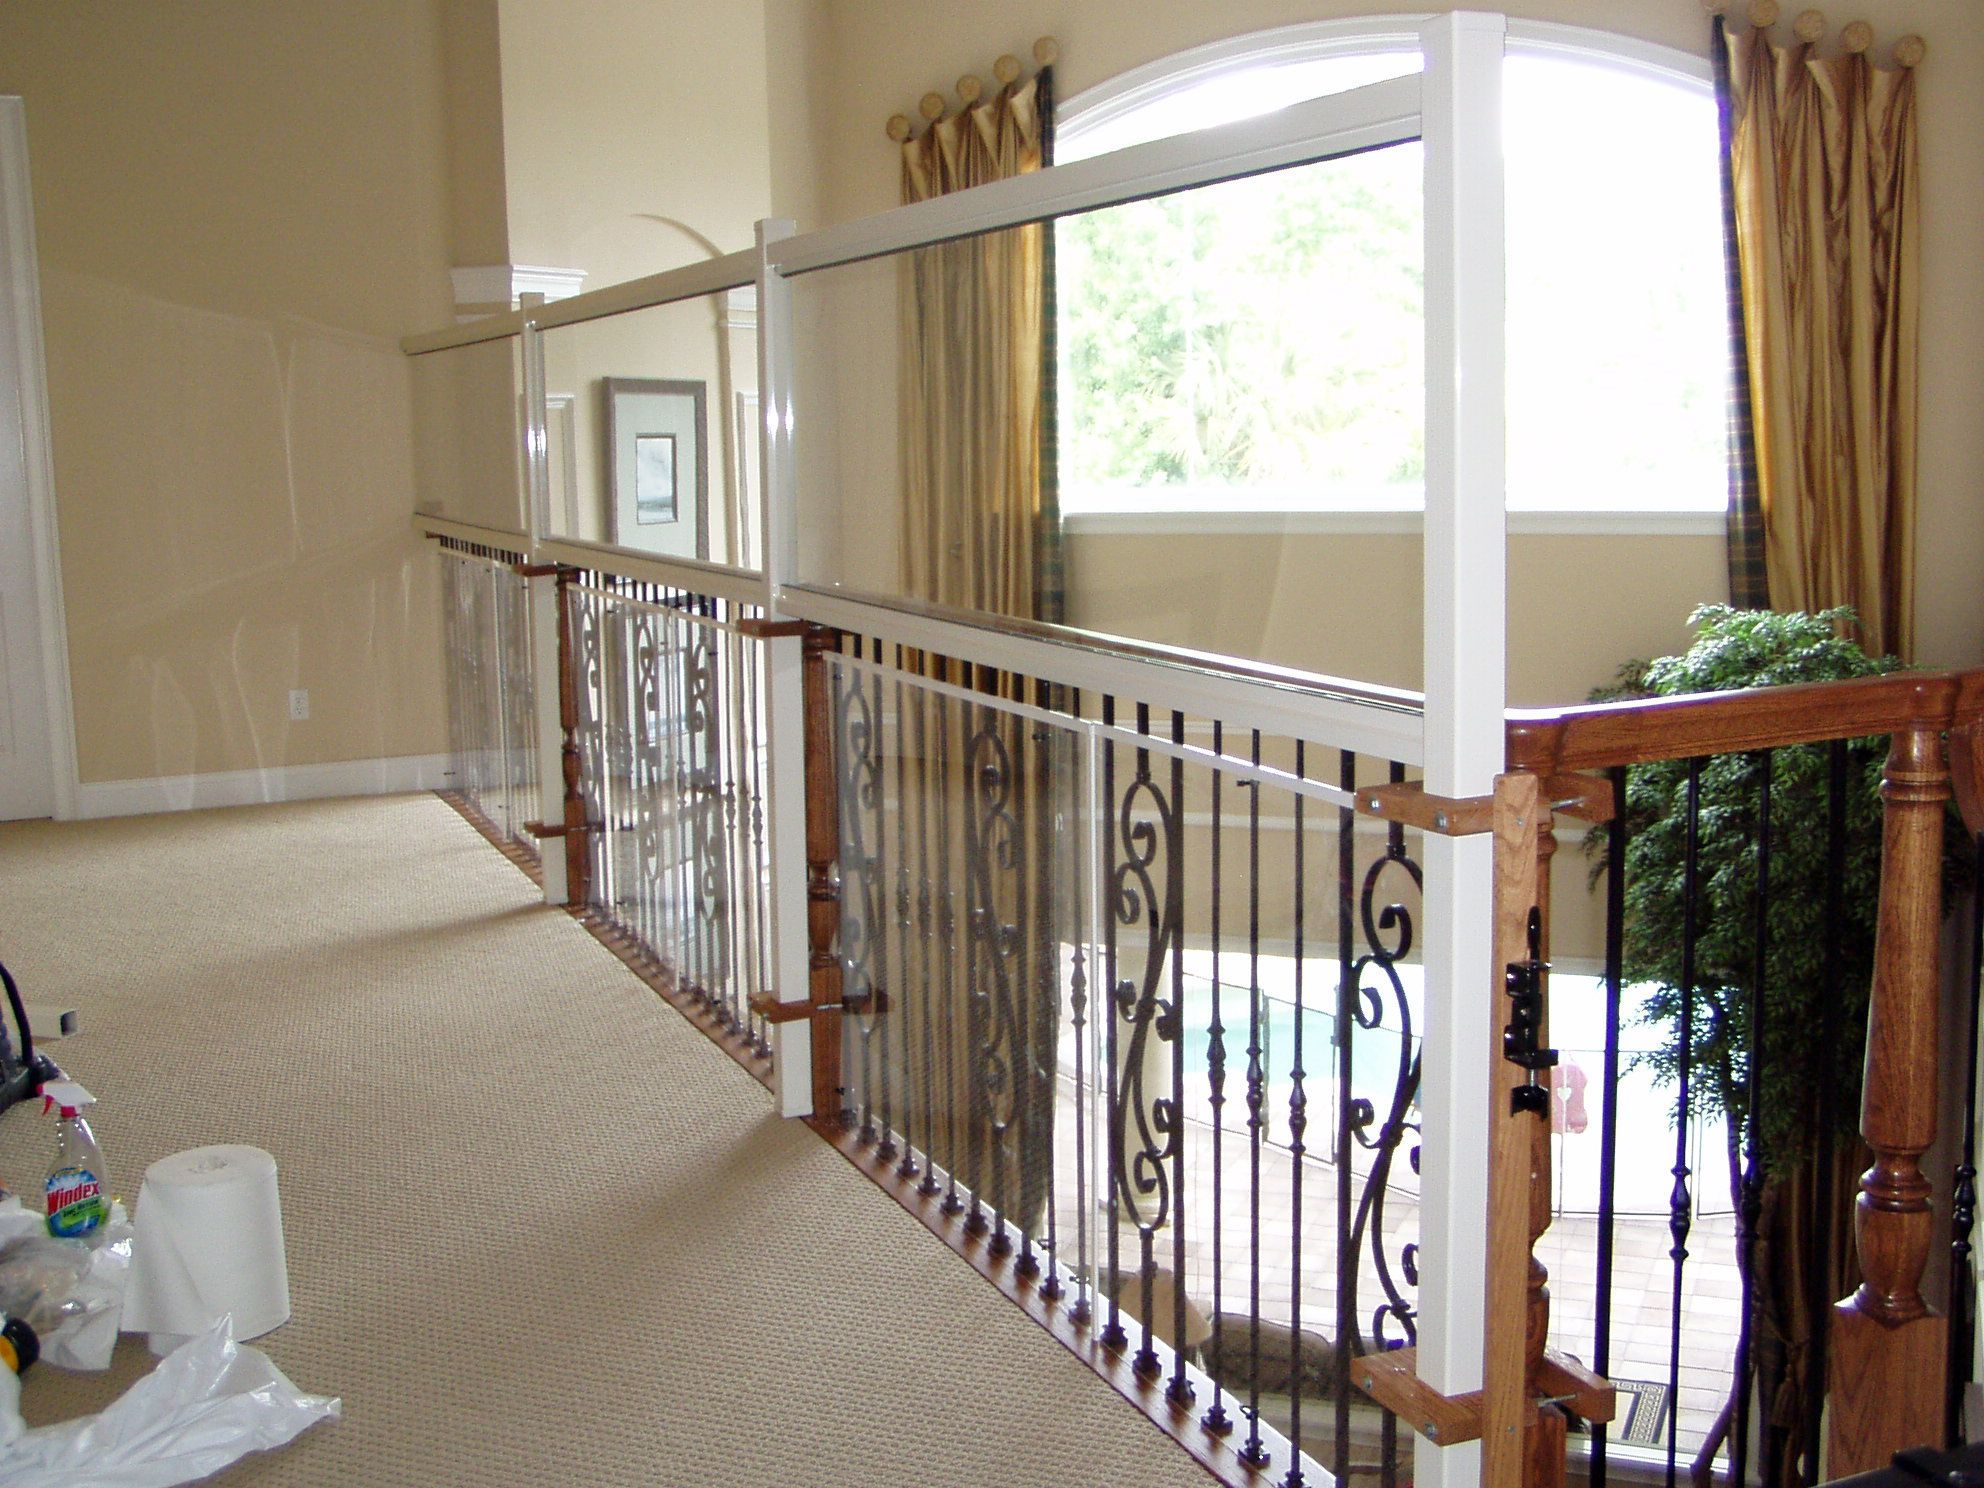 Best Banister Safety After Safety Wall Window Baby Indoor 400 x 300